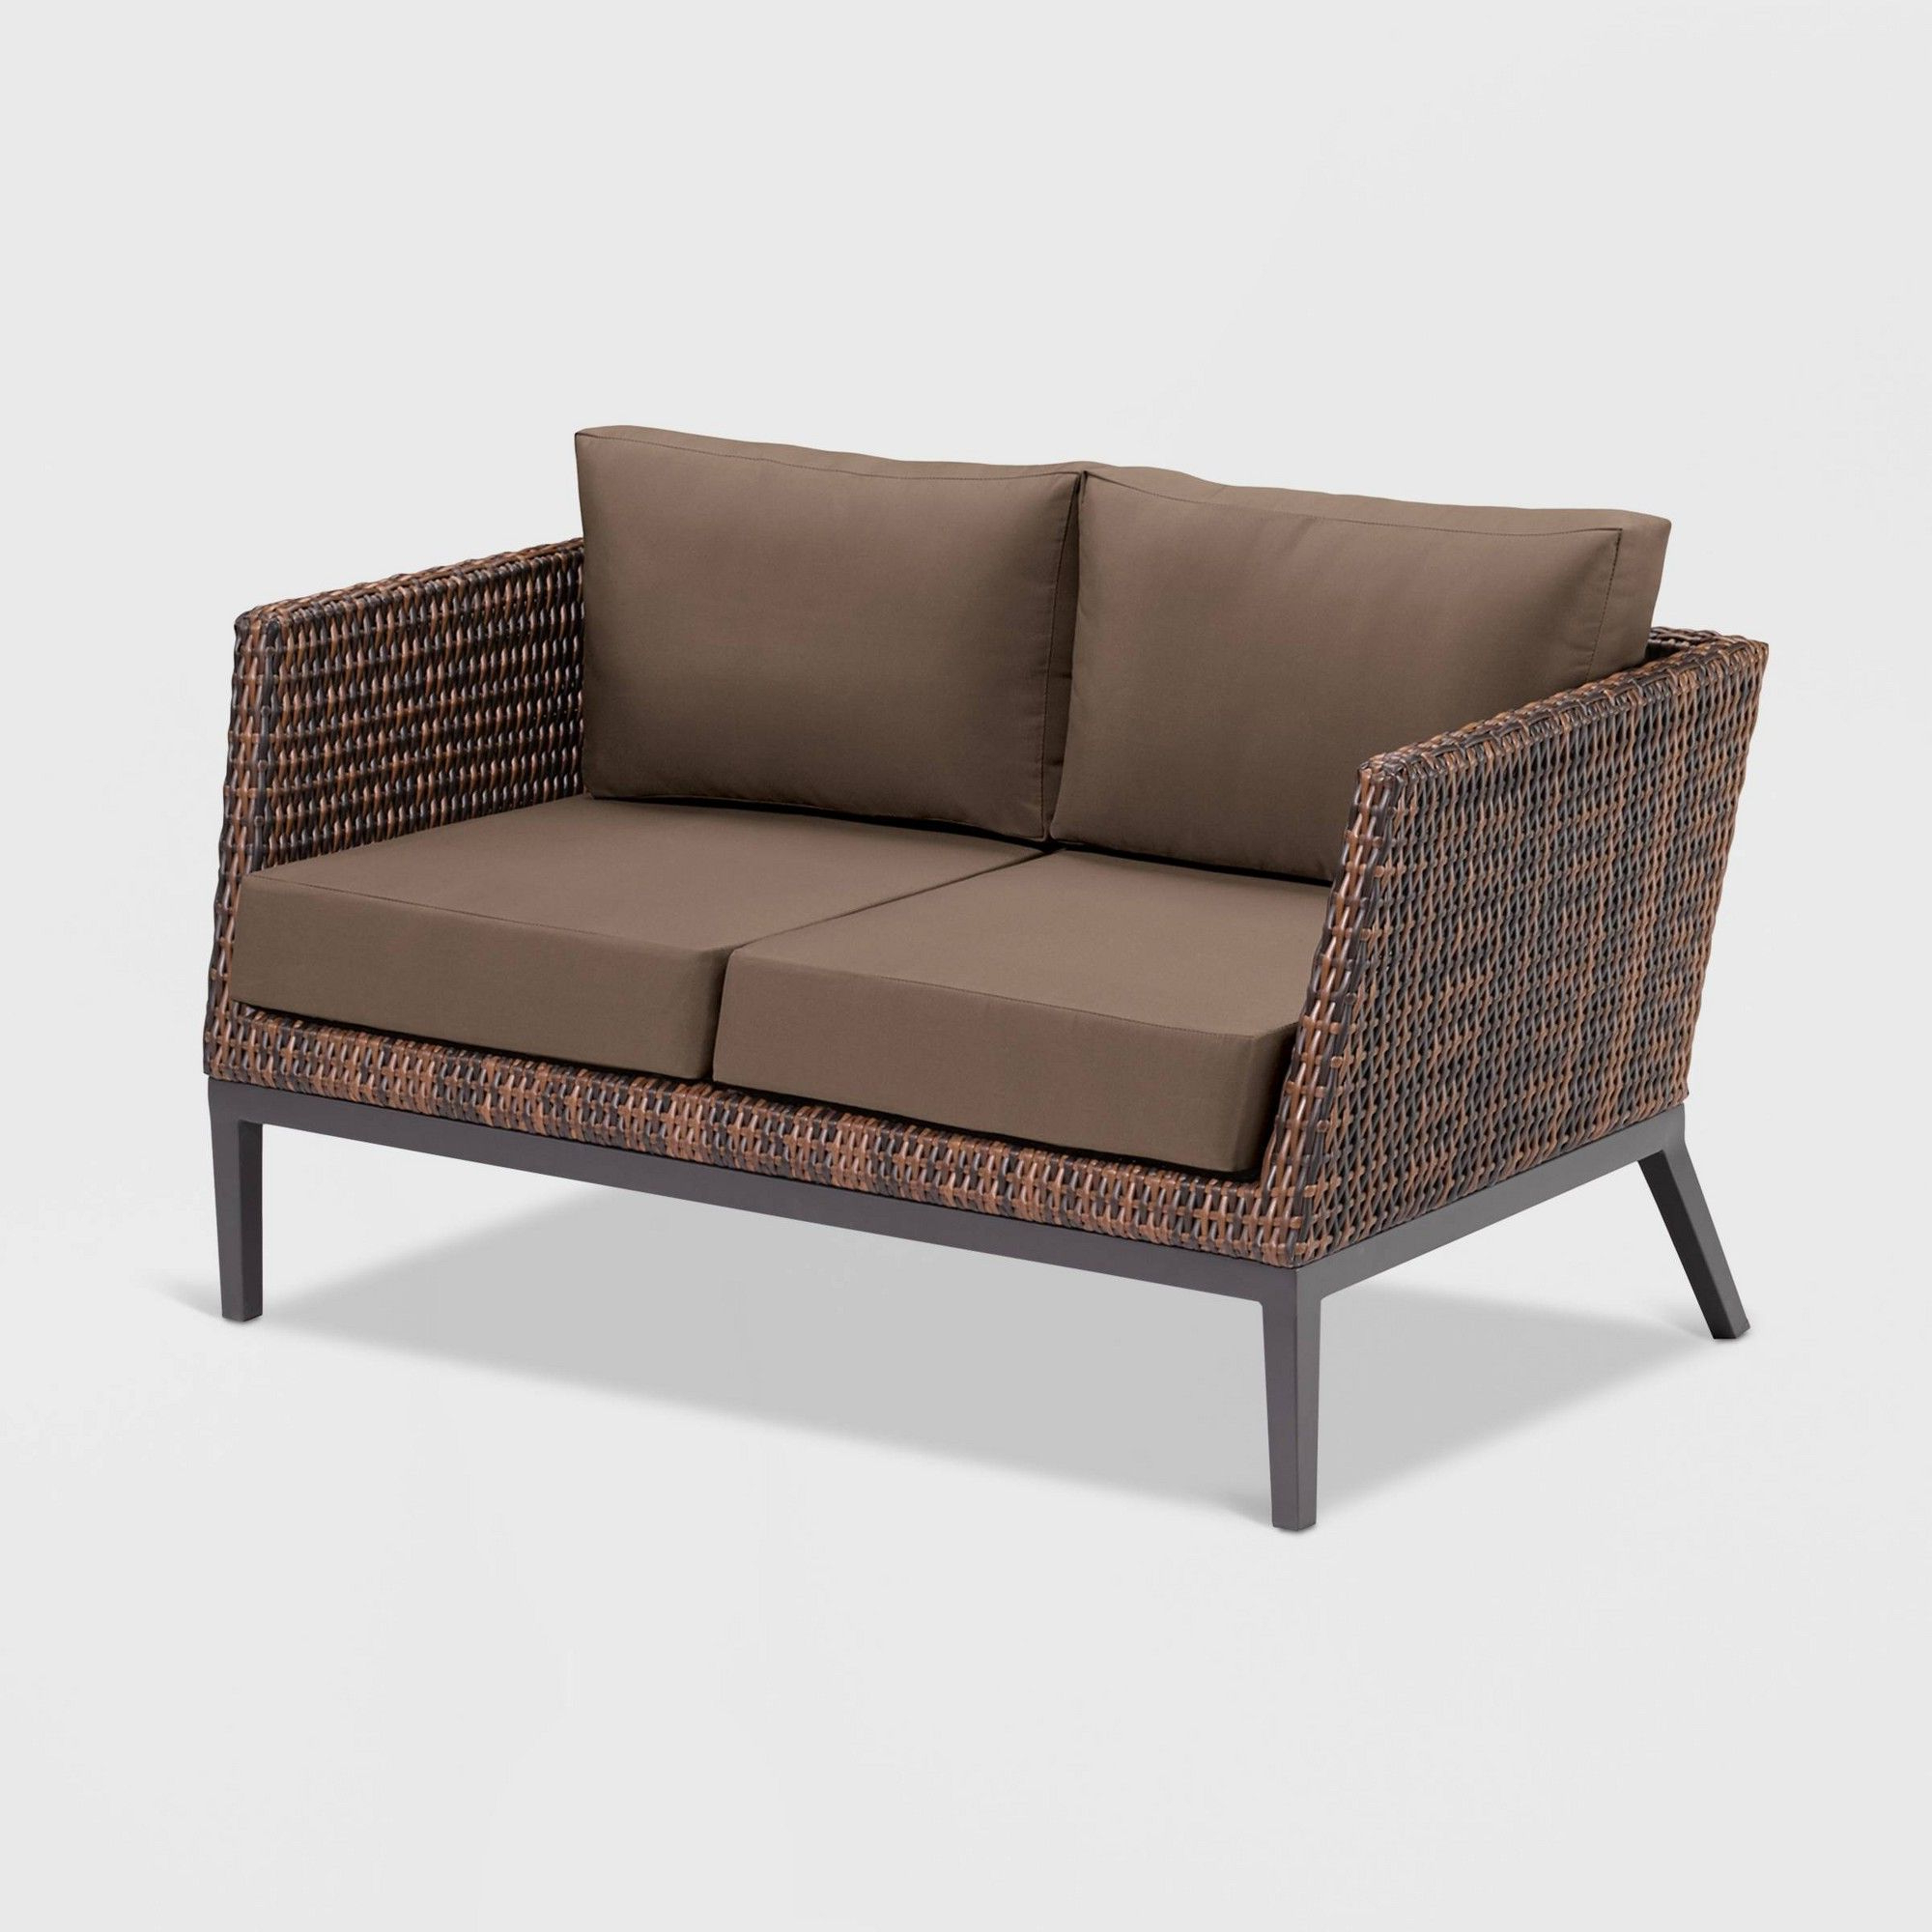 Popular Hagler Outdoor Loveseats With Cushions Pertaining To Salino Woven Resin Wicker Patio Loveseat – Brown – Oxford (Gallery 9 of 25)